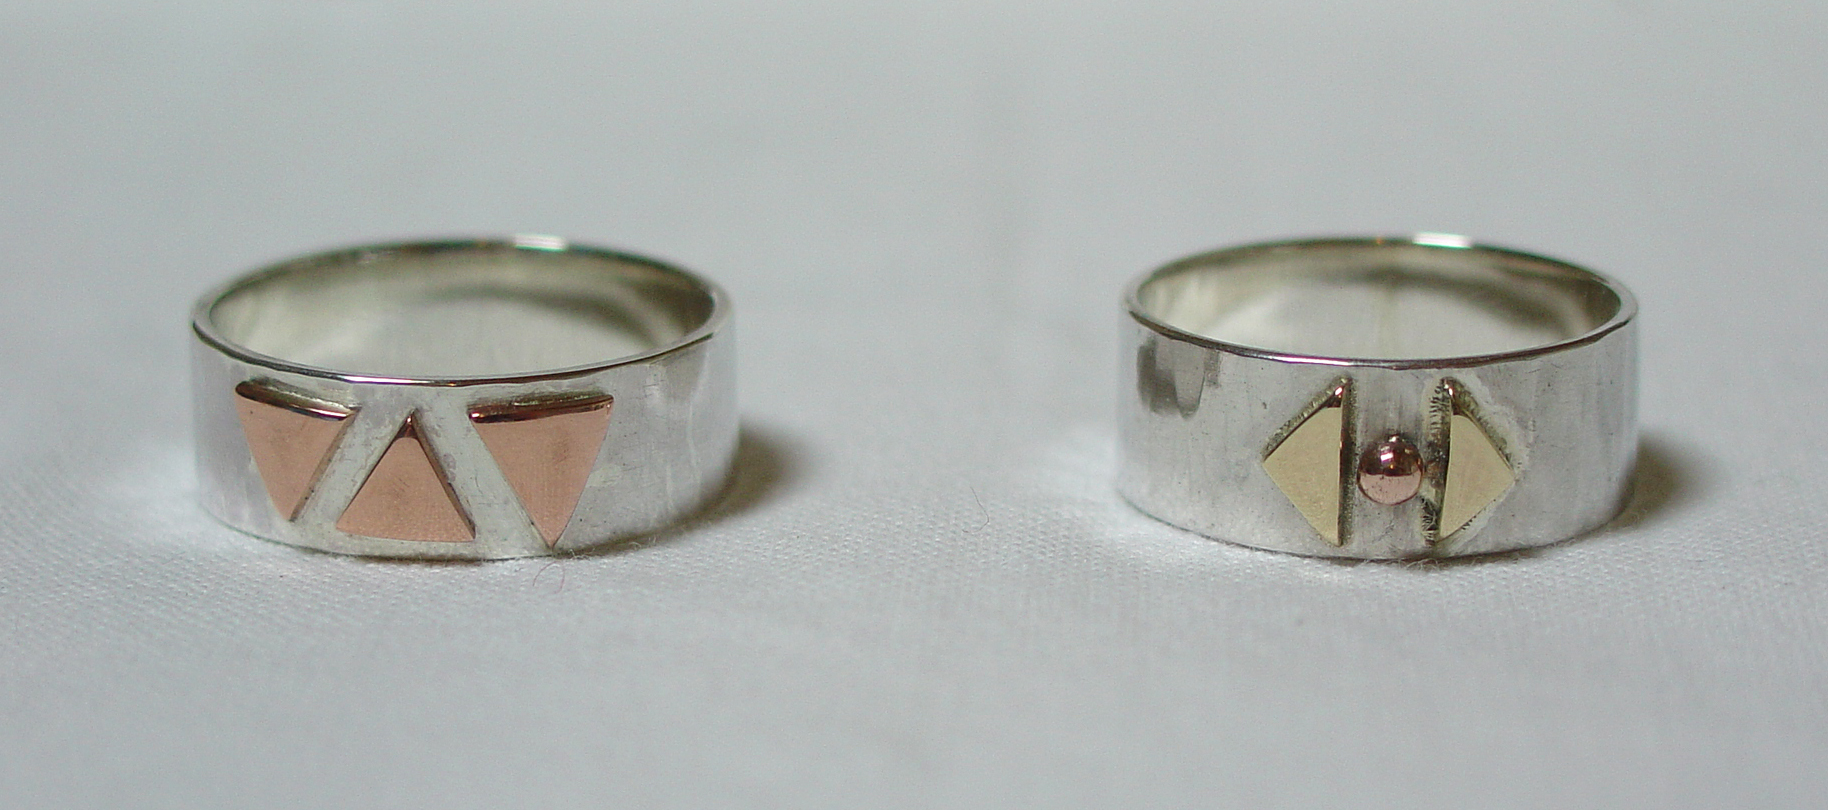 Silver, gold and copper rings